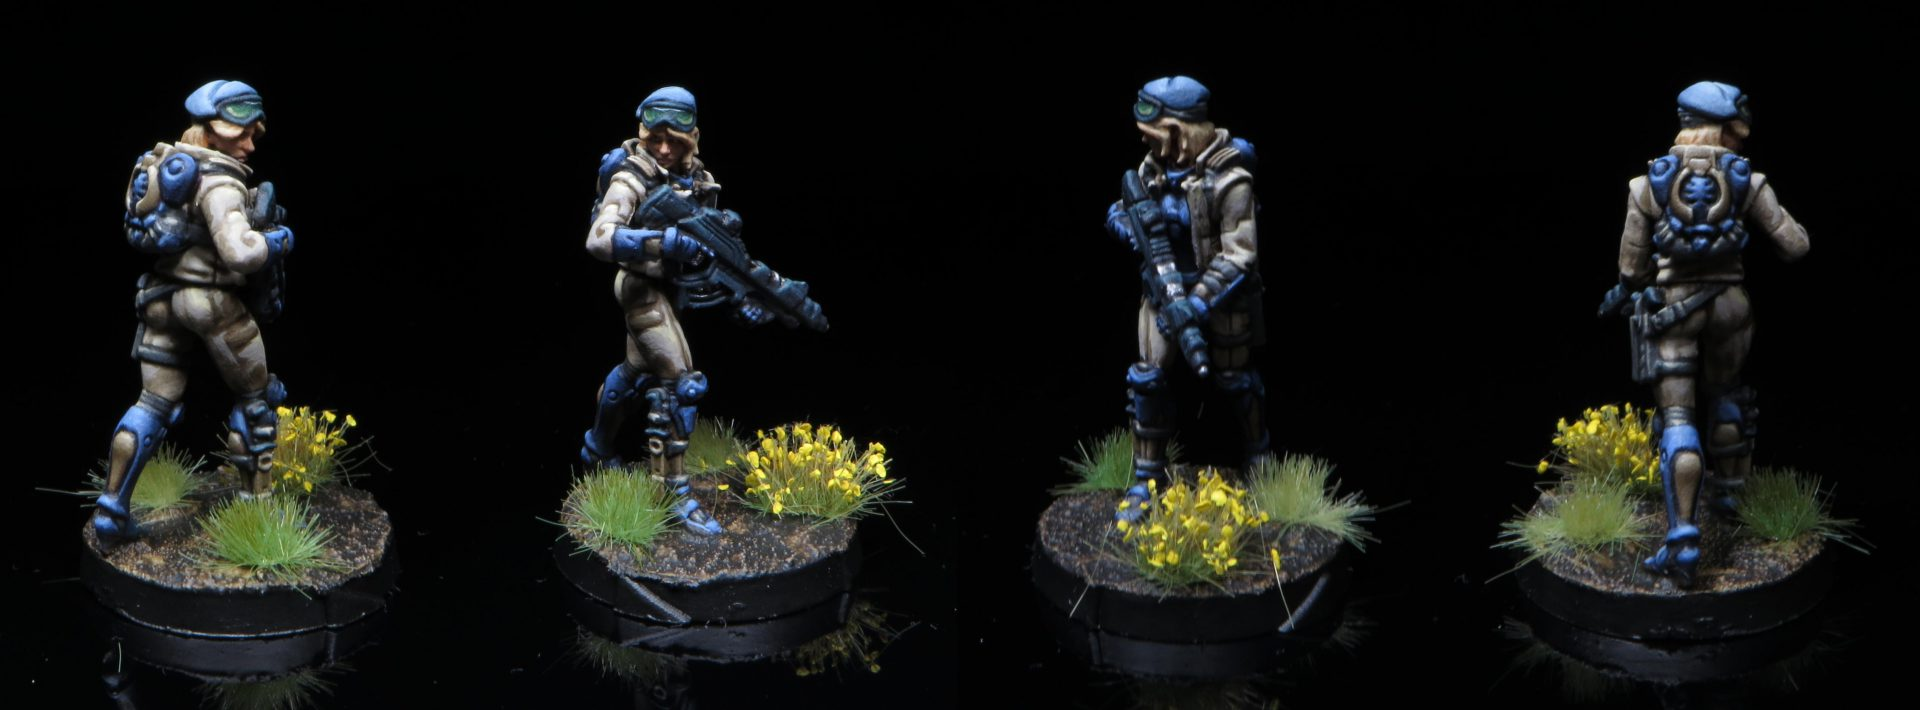 Fusilier with Combi Rifle. Credit: Rockfish